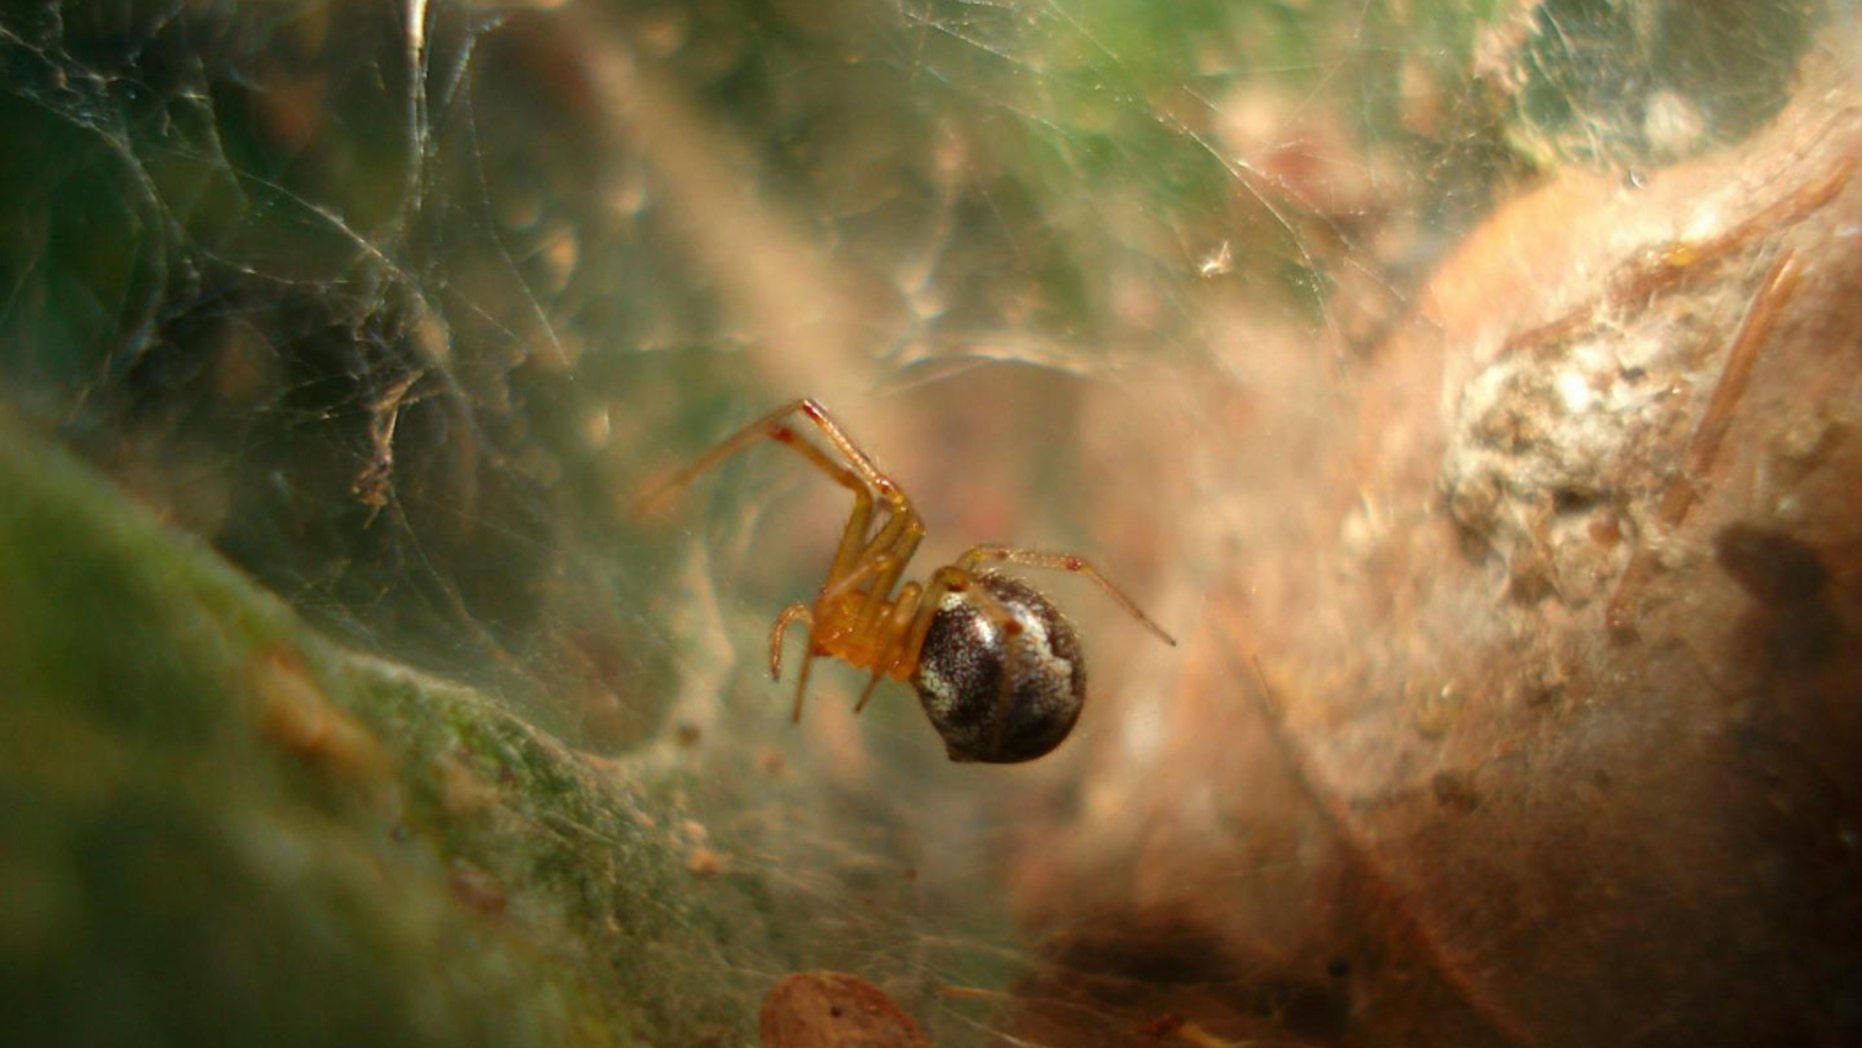 The spider, known as Anelosimus studiosus, which lives along the Gulf and Atlantic coasts of the United States and Mexico. (Credit: Thomas Jones)